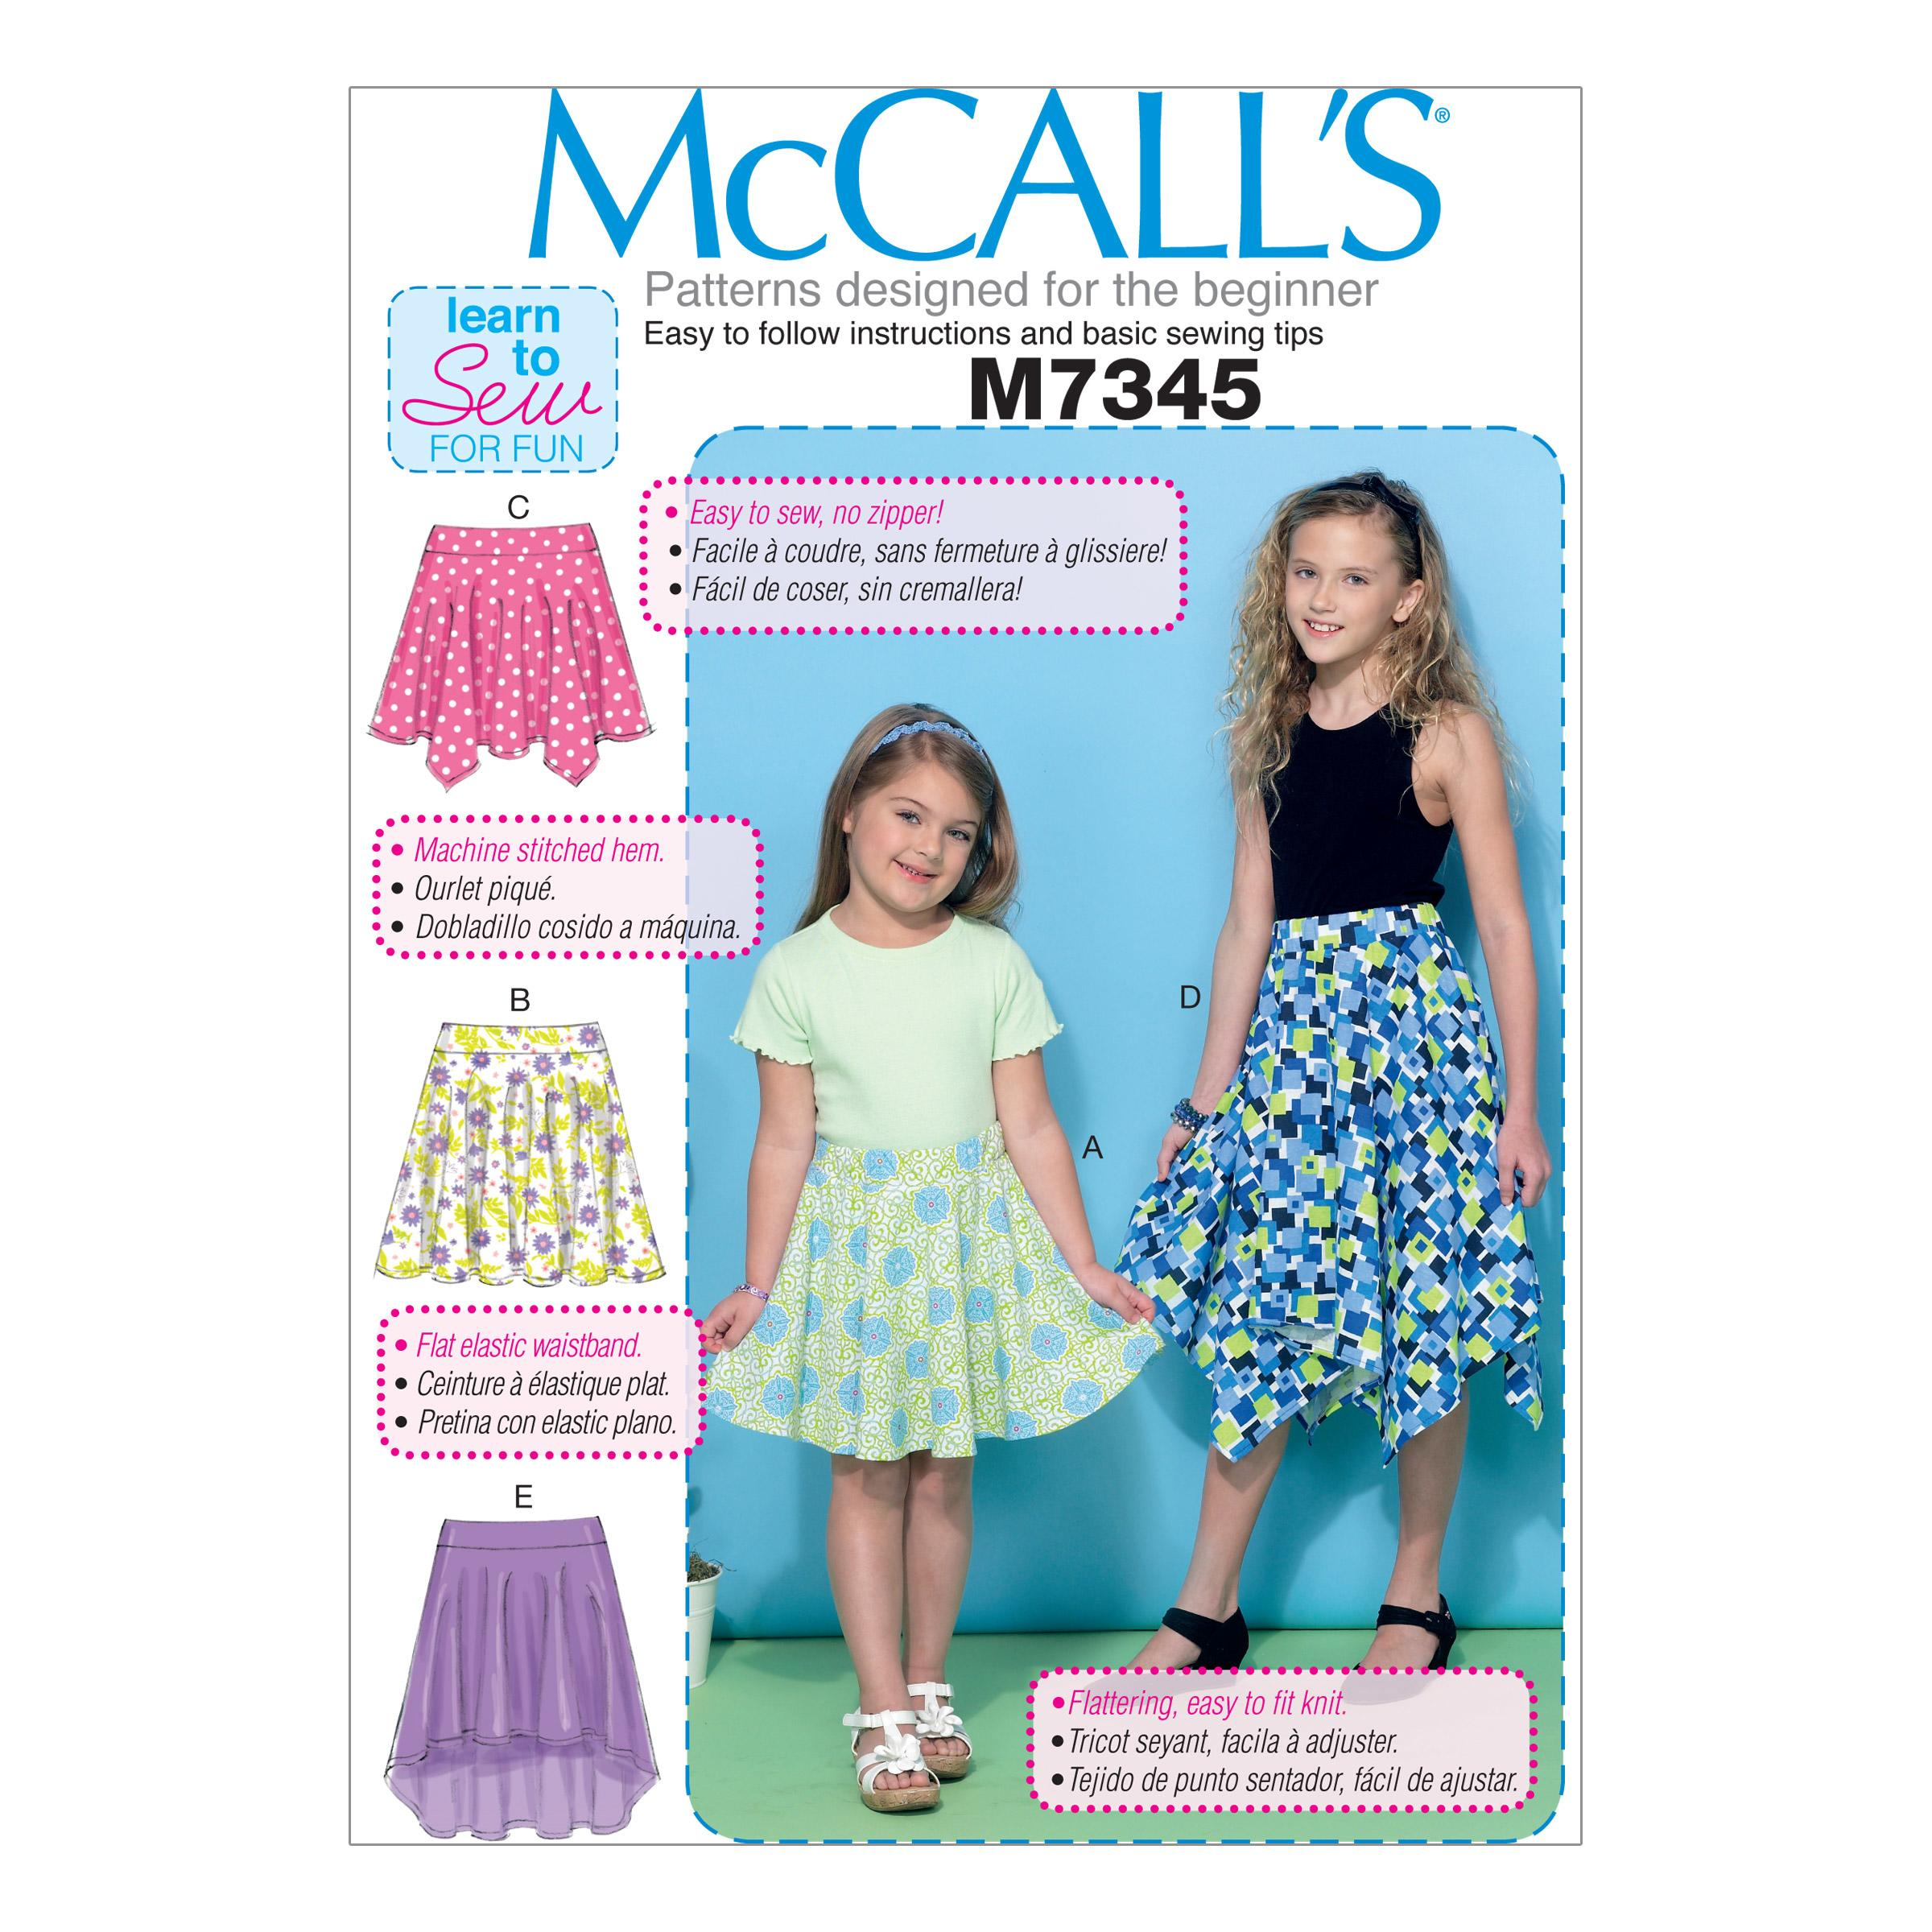 McCalls M7345 Children, Girls/Boys, Learn To Sew for Fun